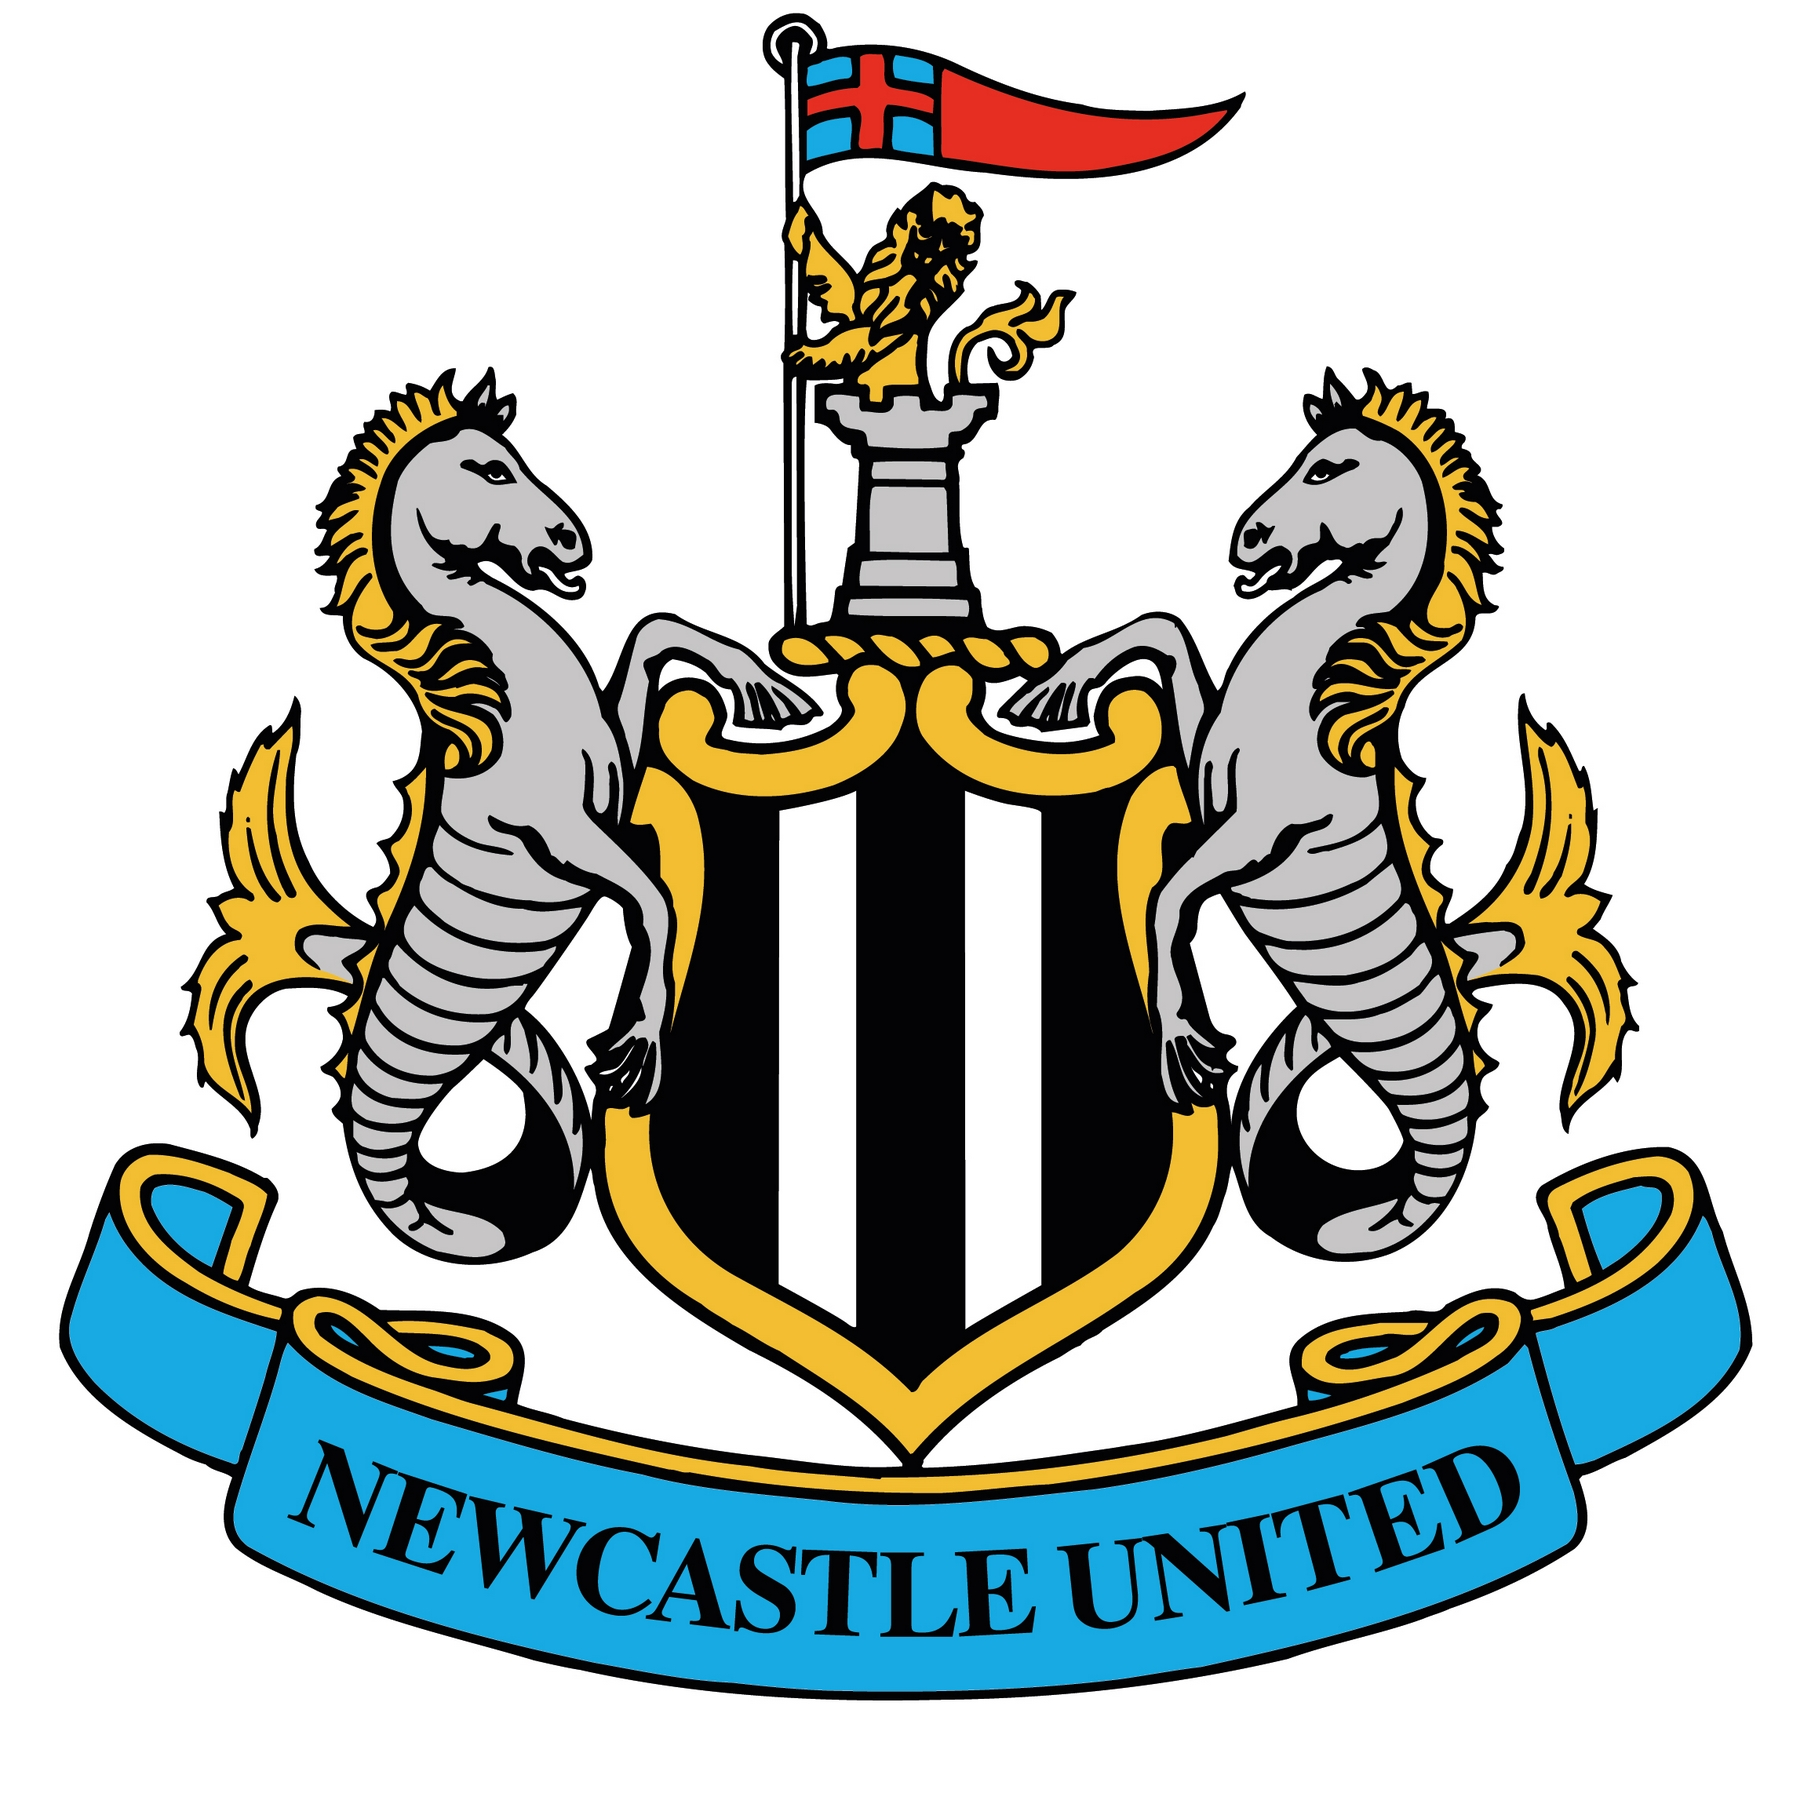 Newcastle united badge clipart.